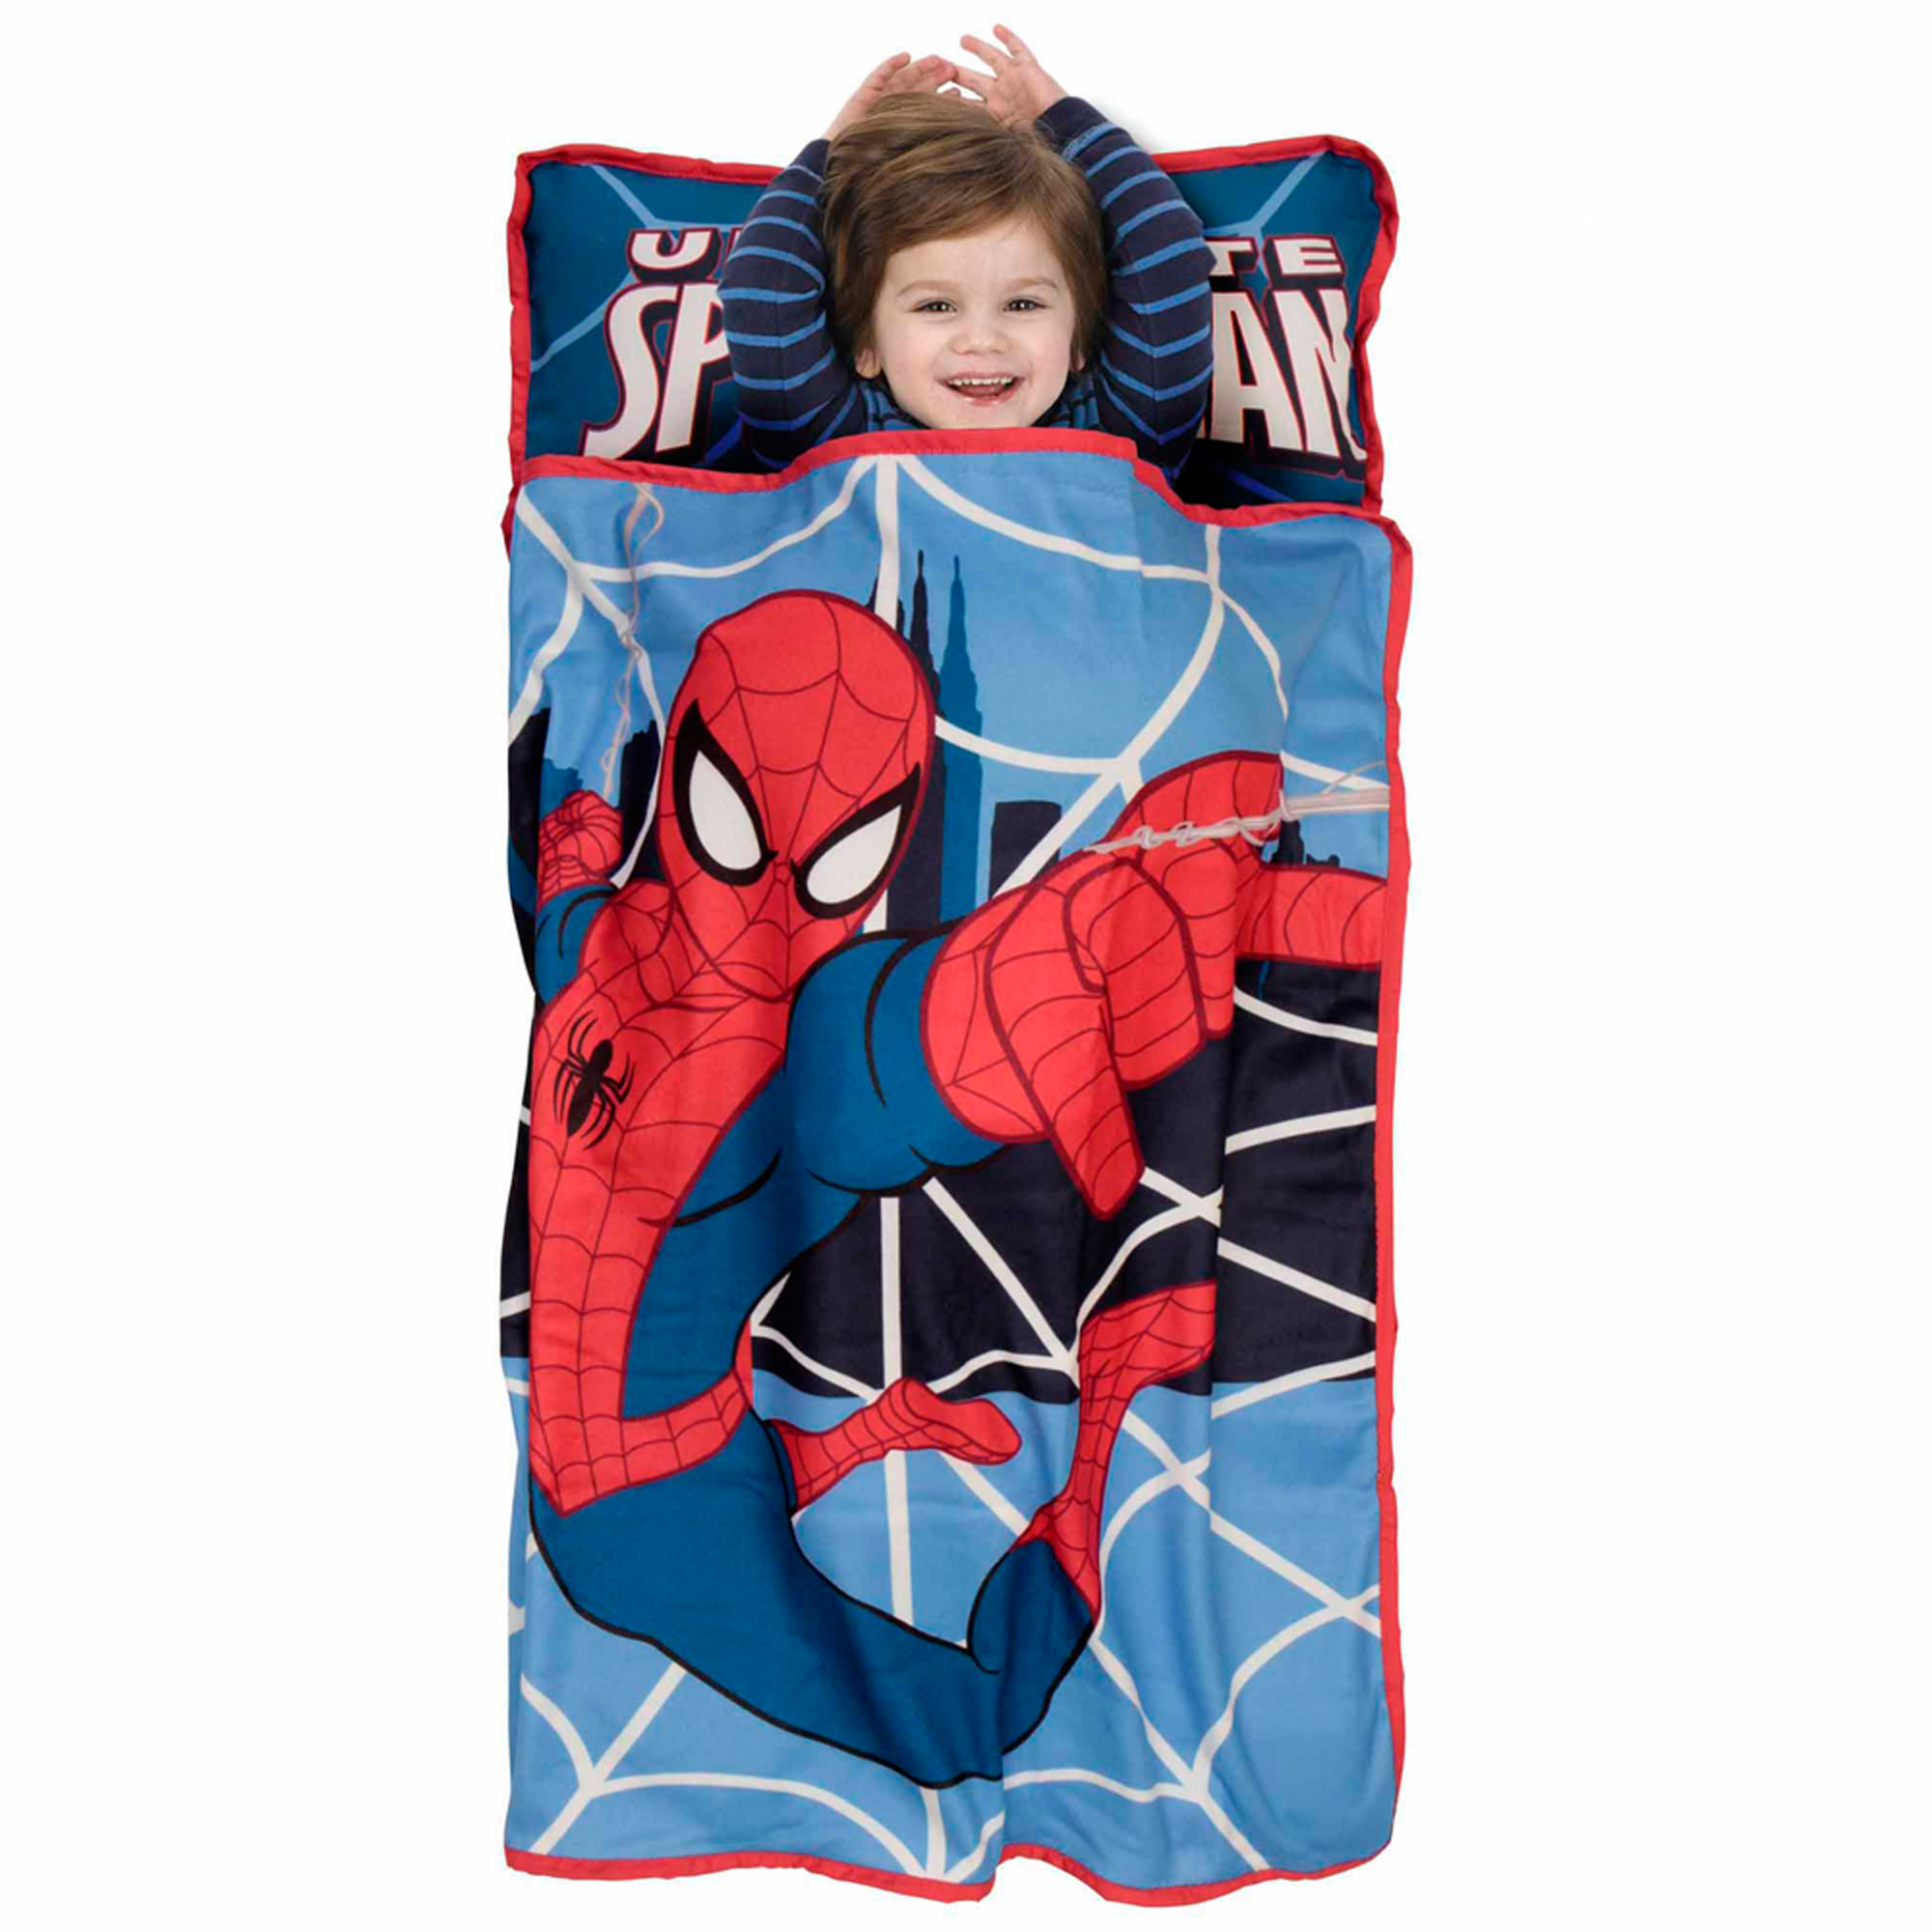 Spiderman Toddler Nap Mat